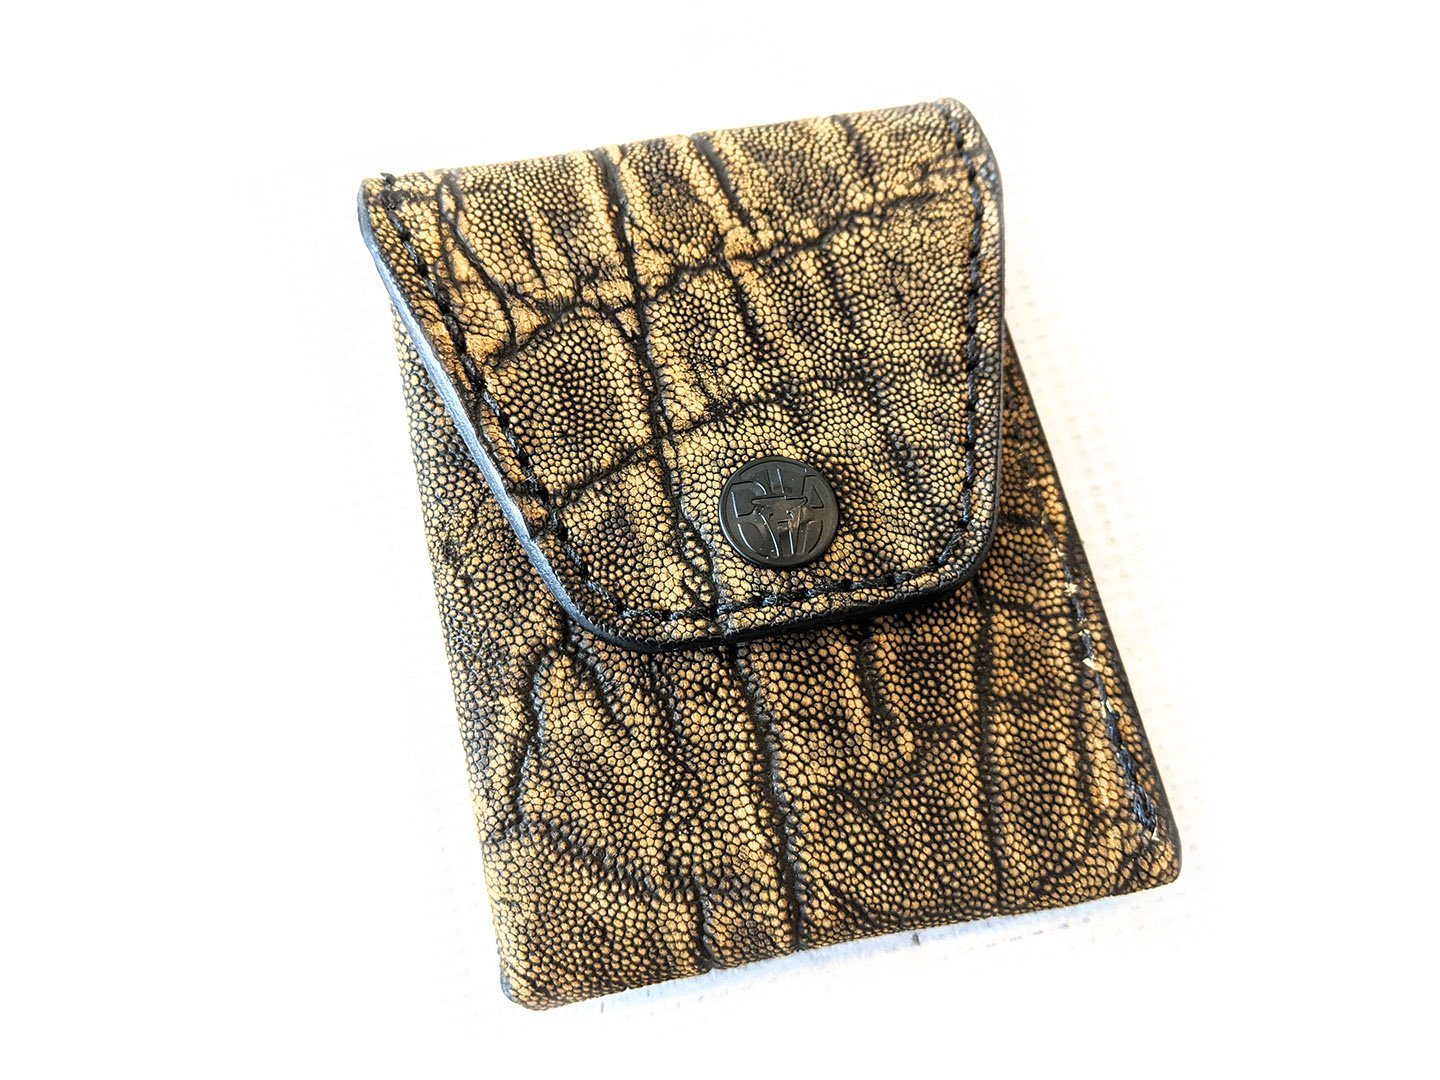 Sarasota Wallet - Gold Rush Elephant - Anvil Customs